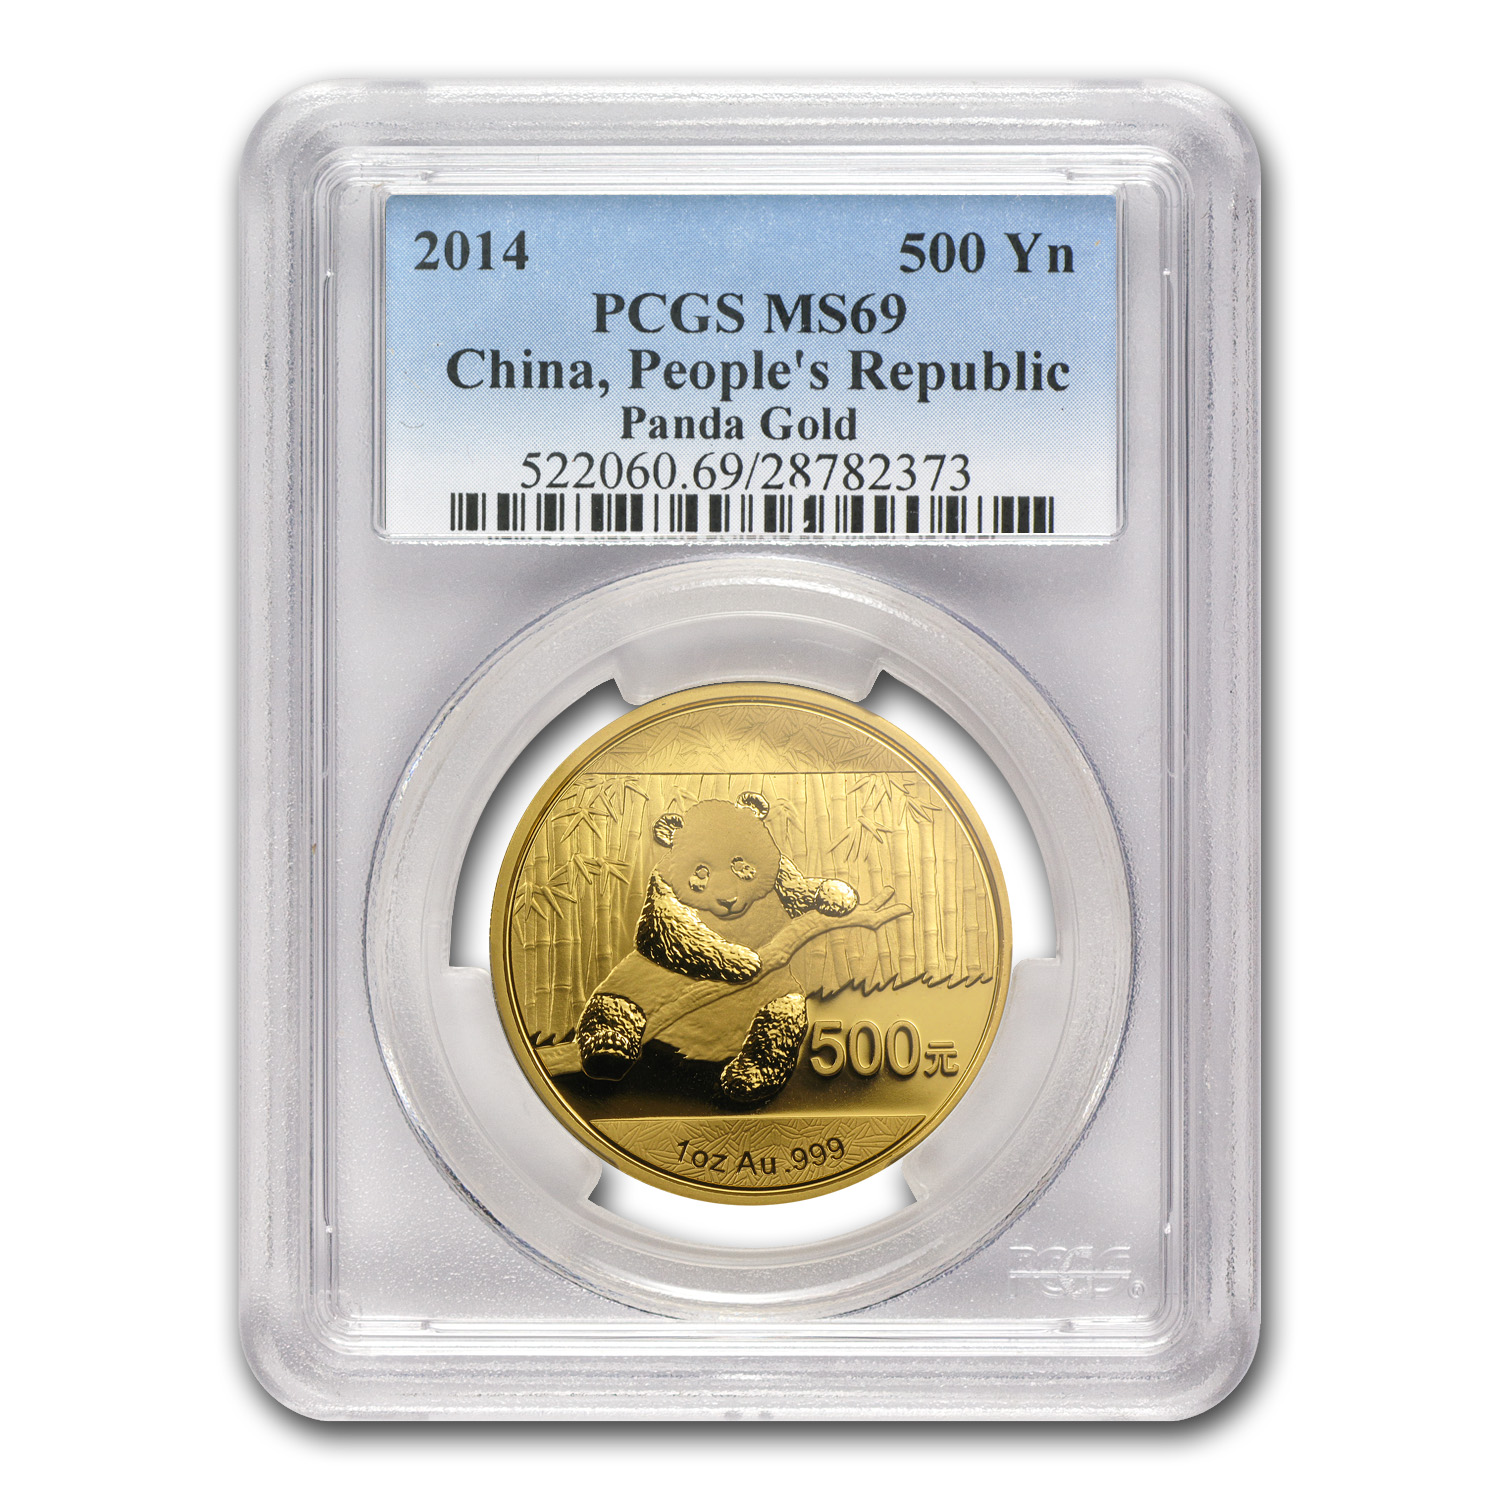 2014 China 1 oz Gold Panda MS-69 PCGS